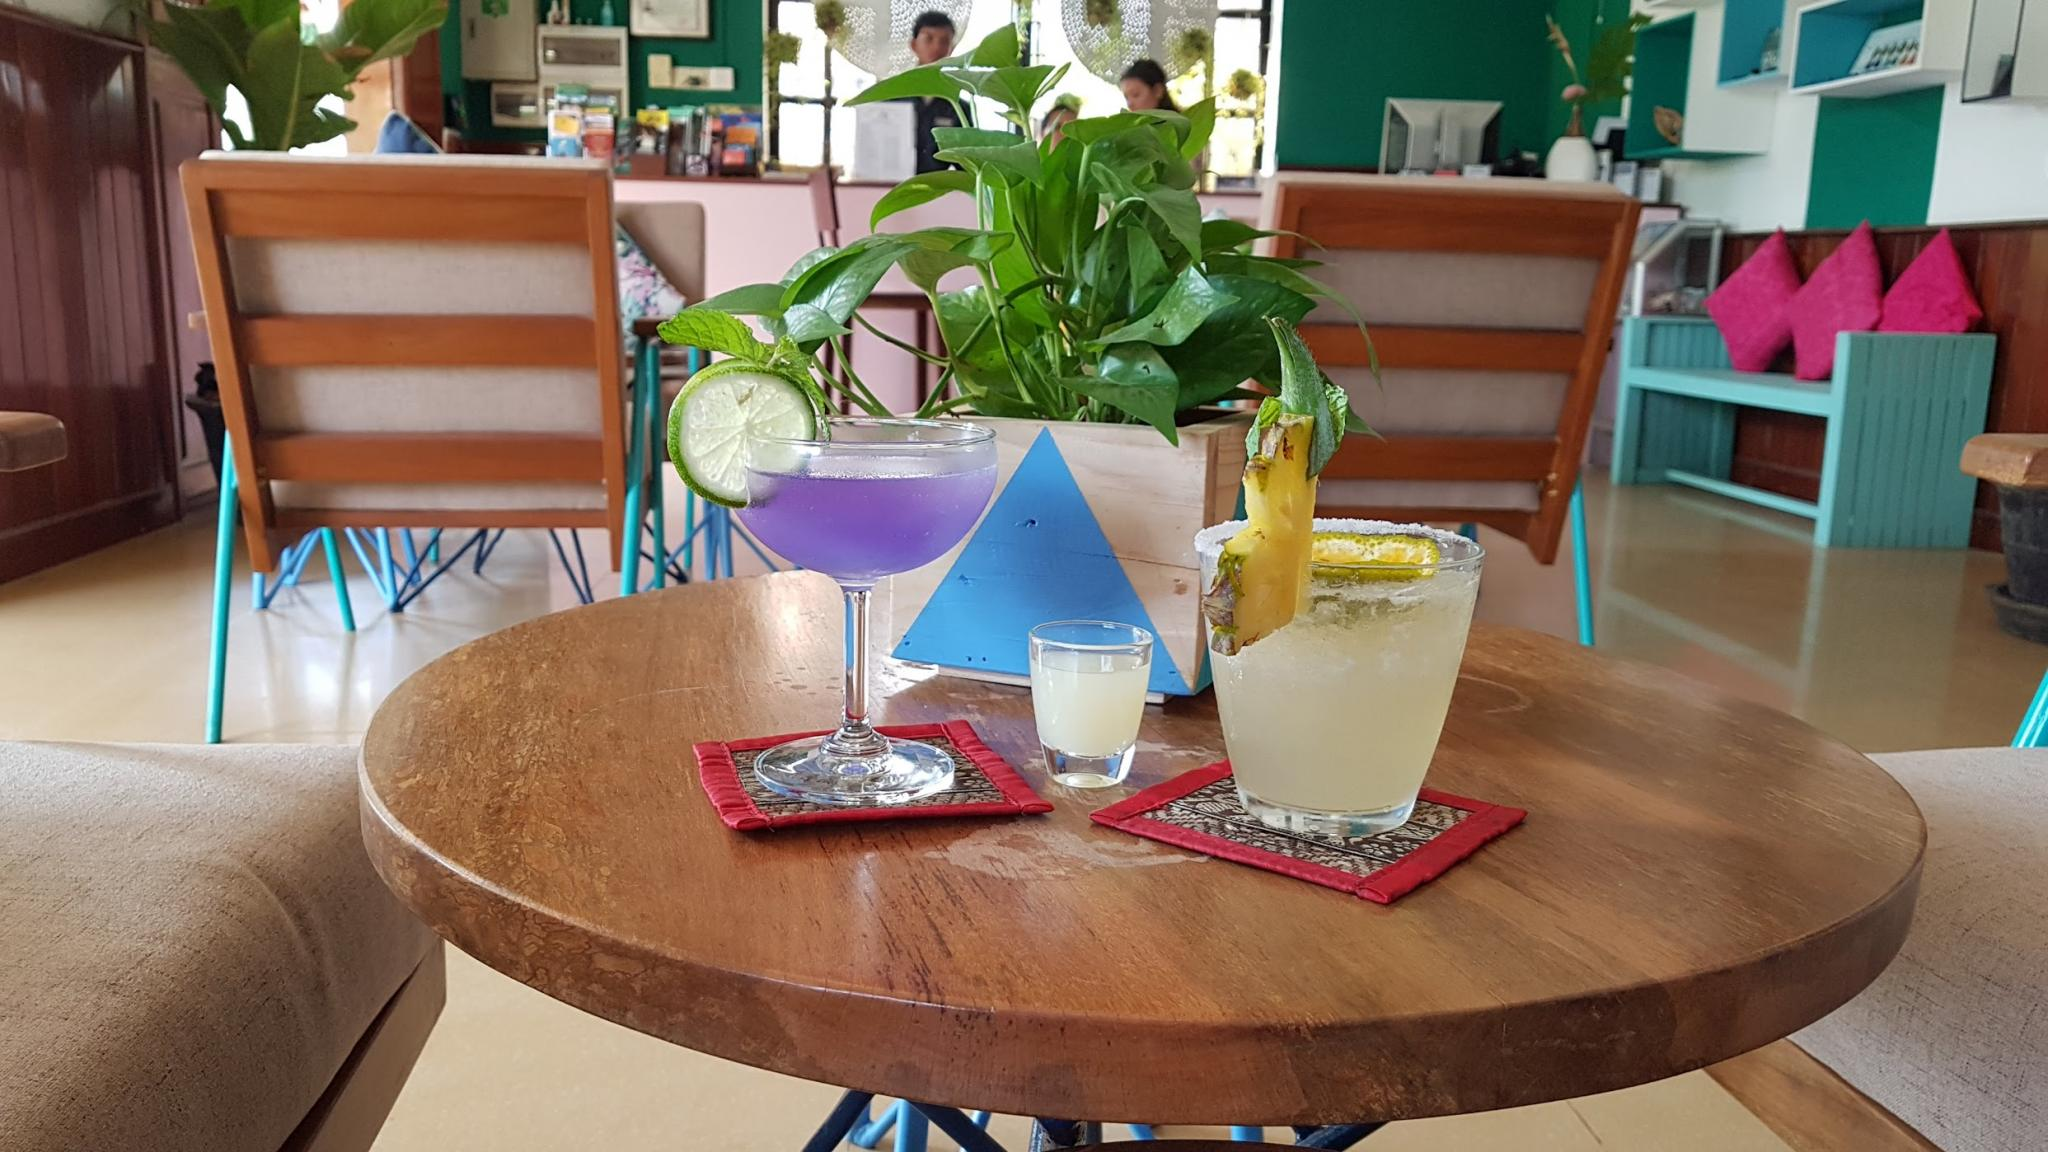 El Diego and The Mood Ring cocktails of the month for December 2017 at Baby Elephant Boutique Hotel in Siem Reap, Cambodia